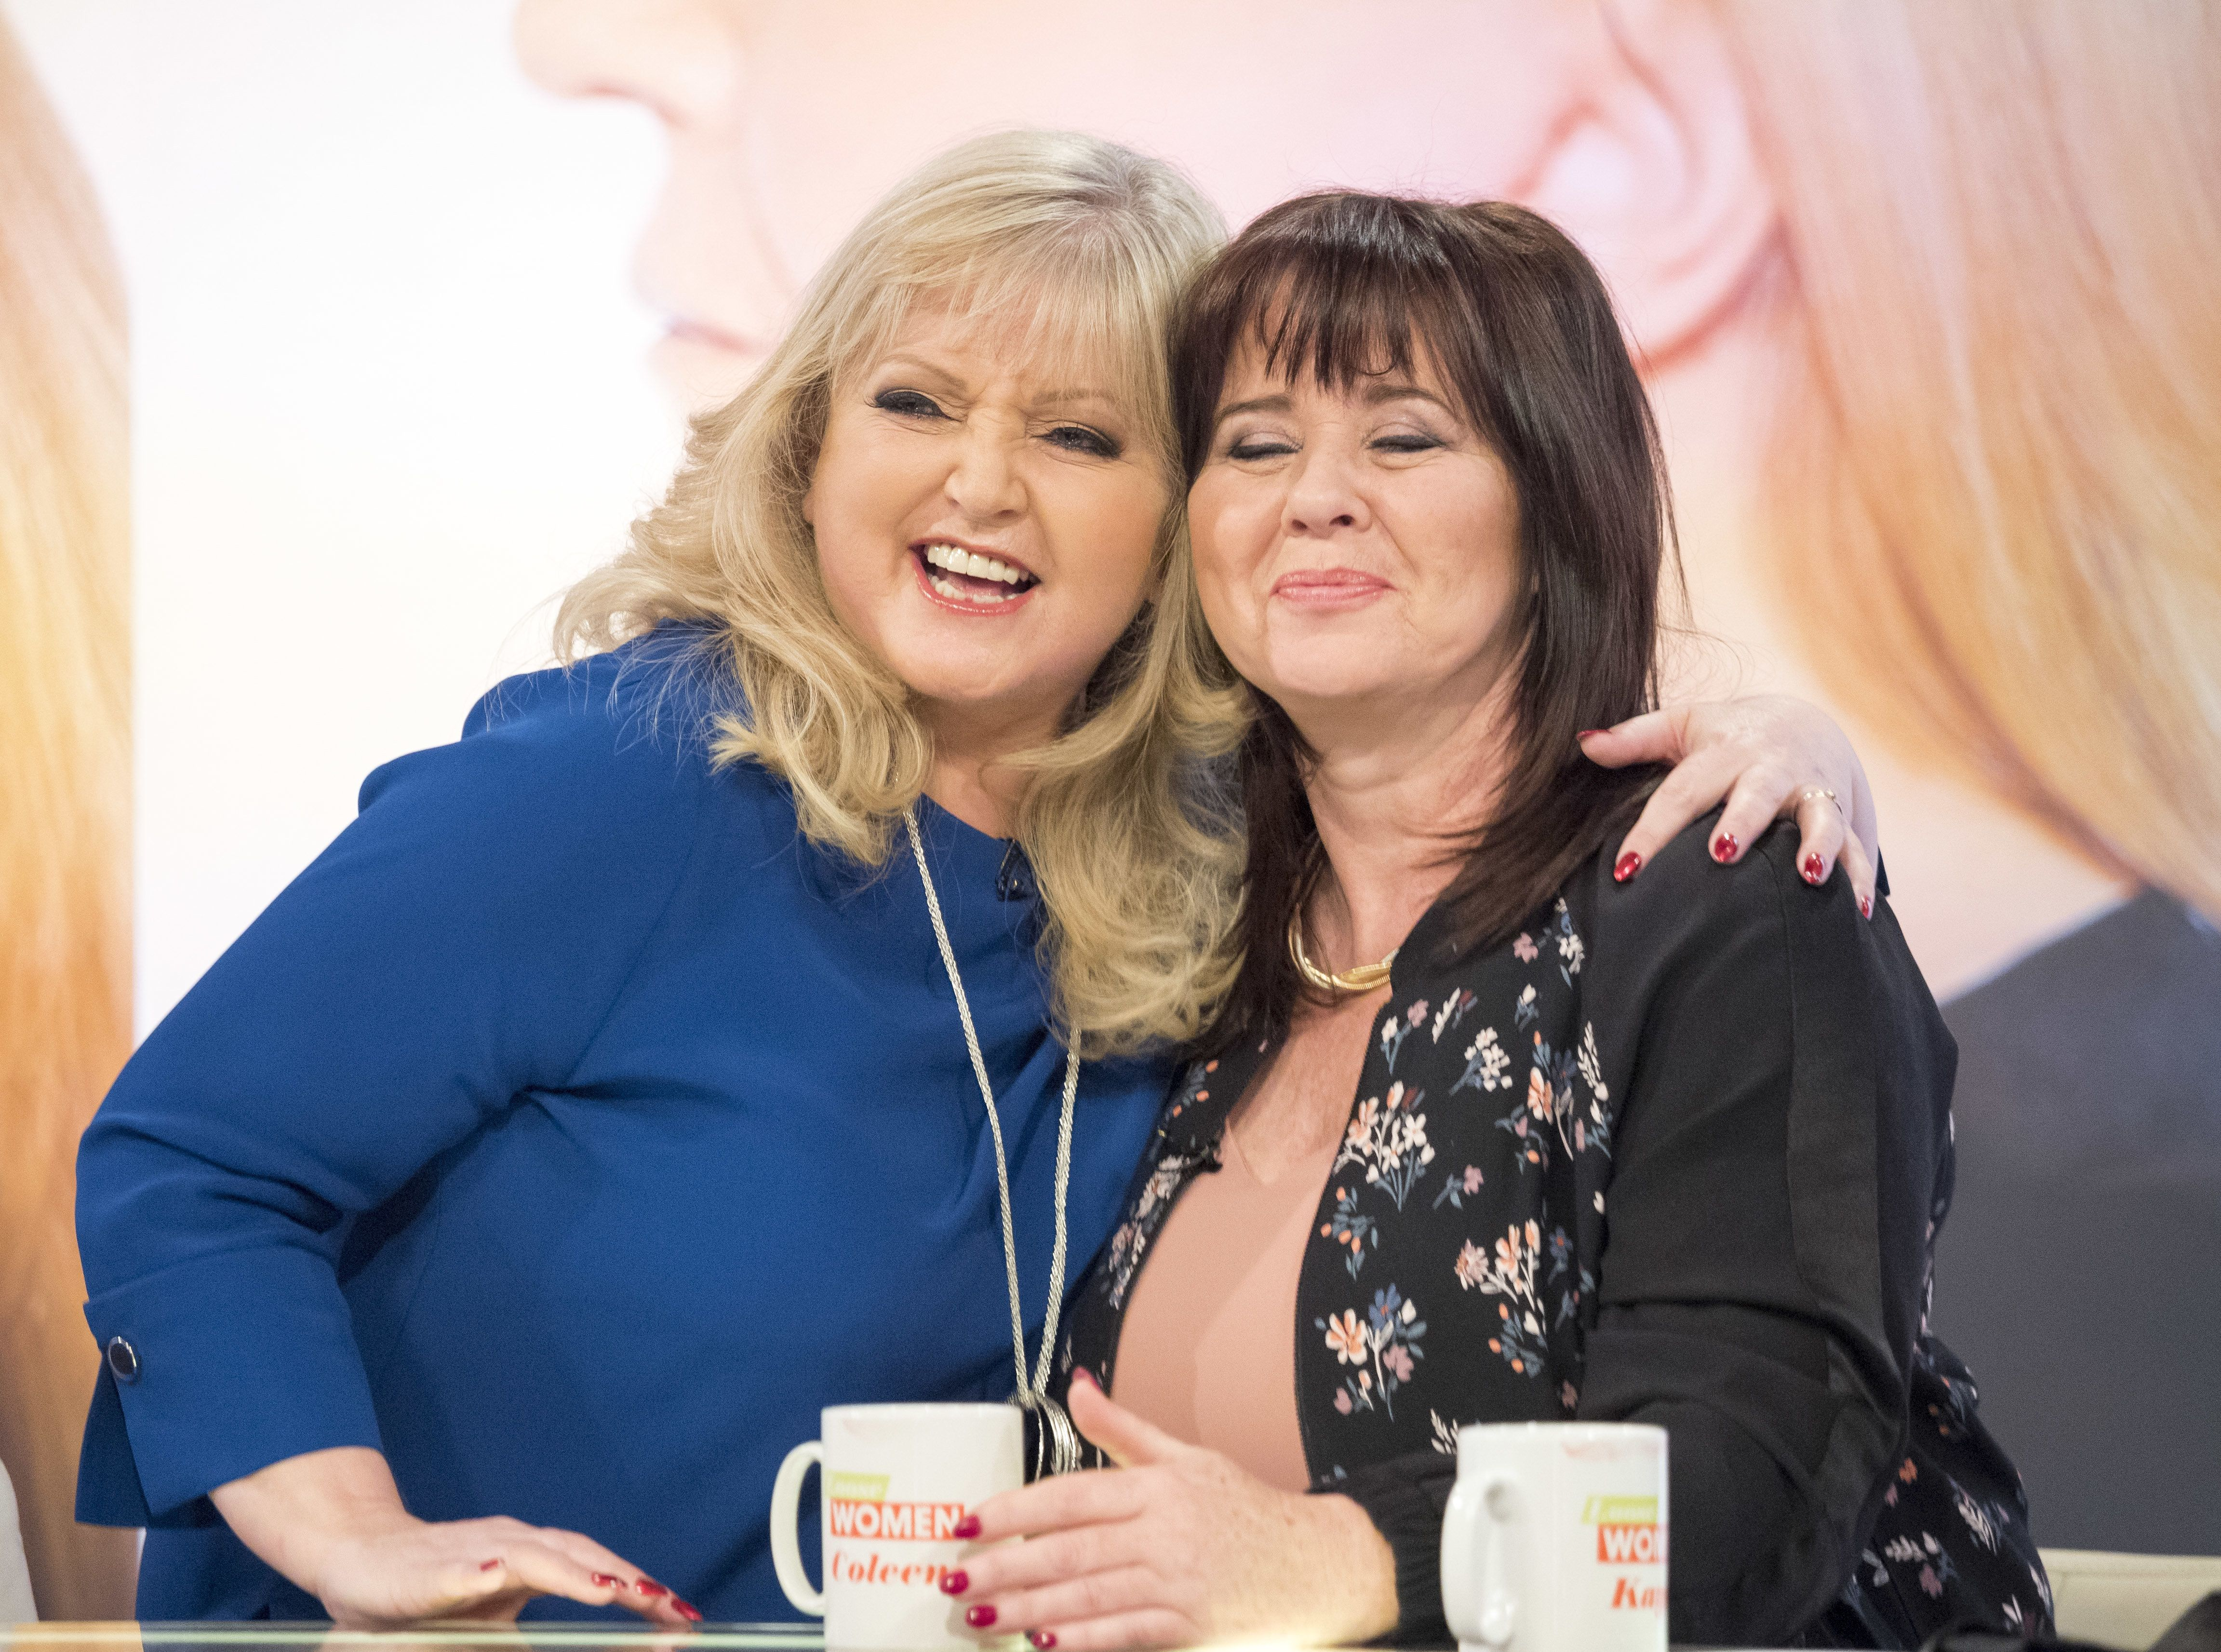 Coleen Nolan Says Sister Linda's Cancer Diagnosis Pushed Her To Take Part In Swimsuit